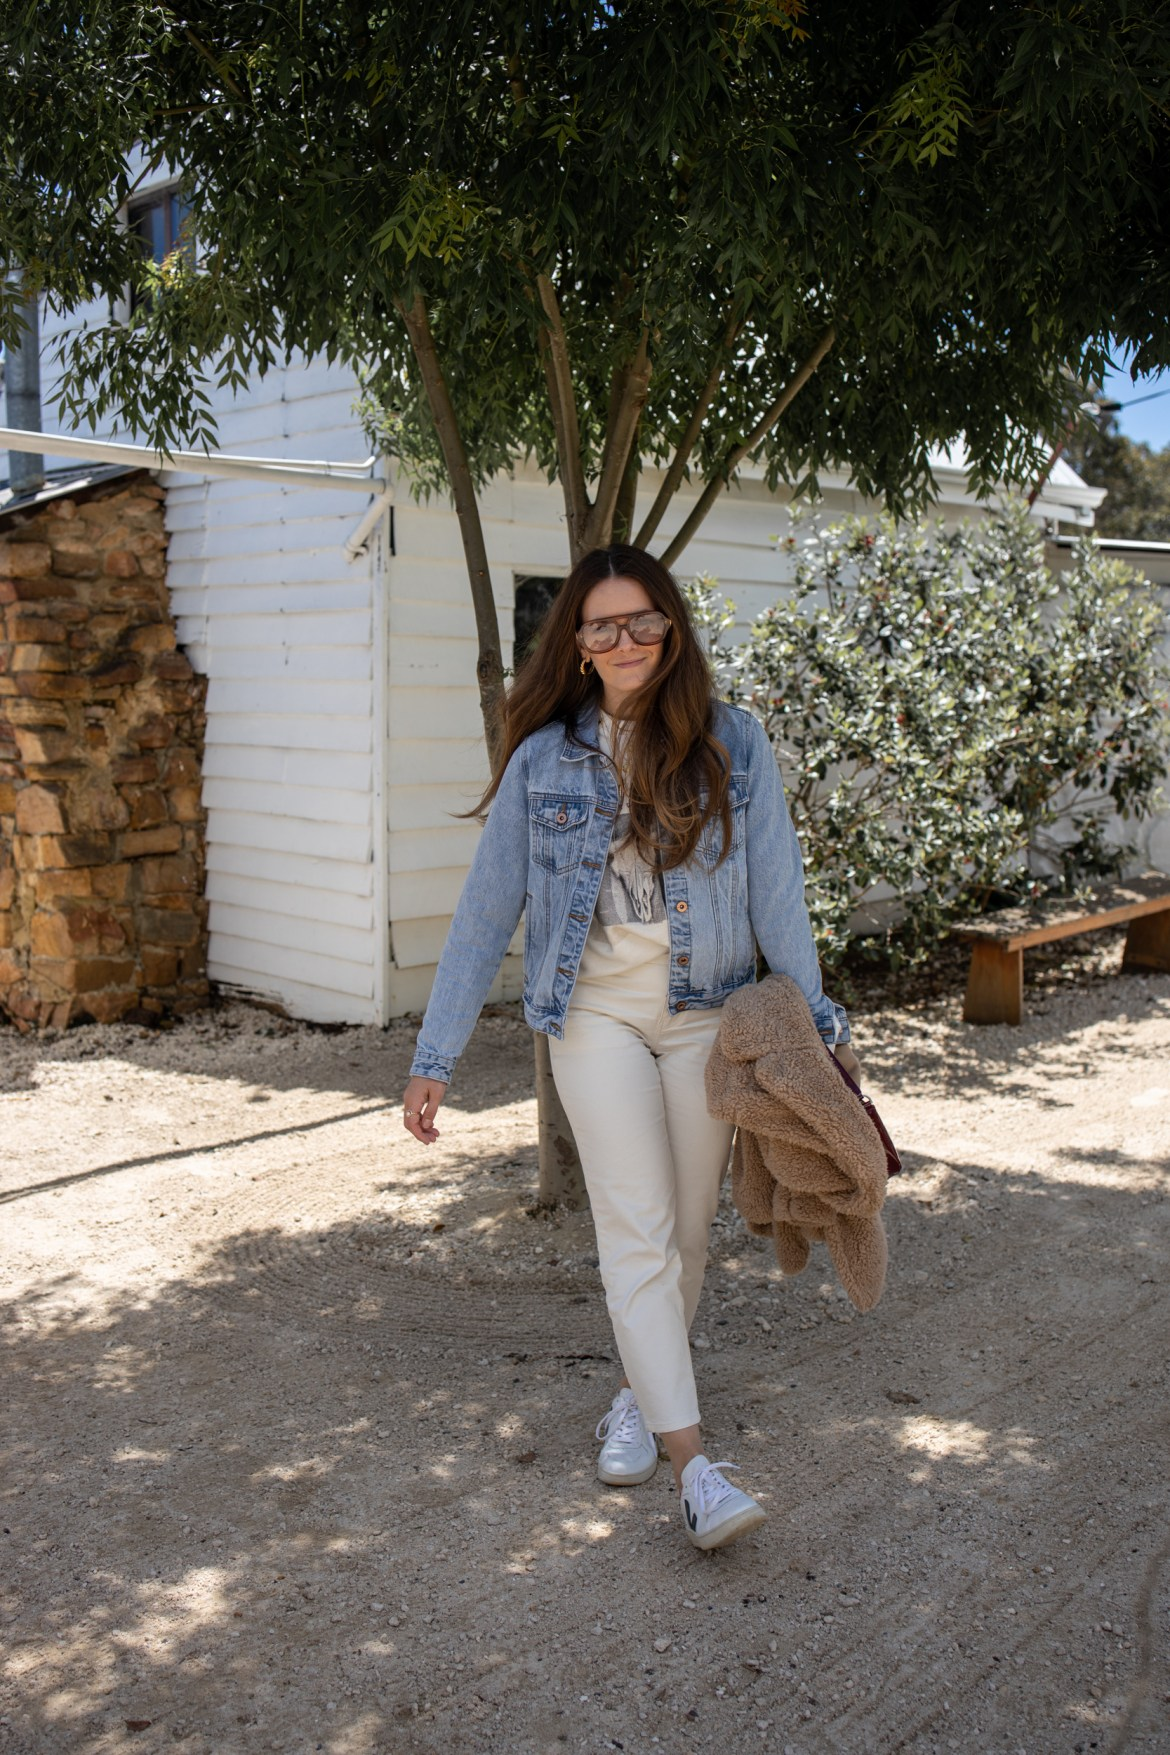 layering outfit with denim jacket and sweater over jeans